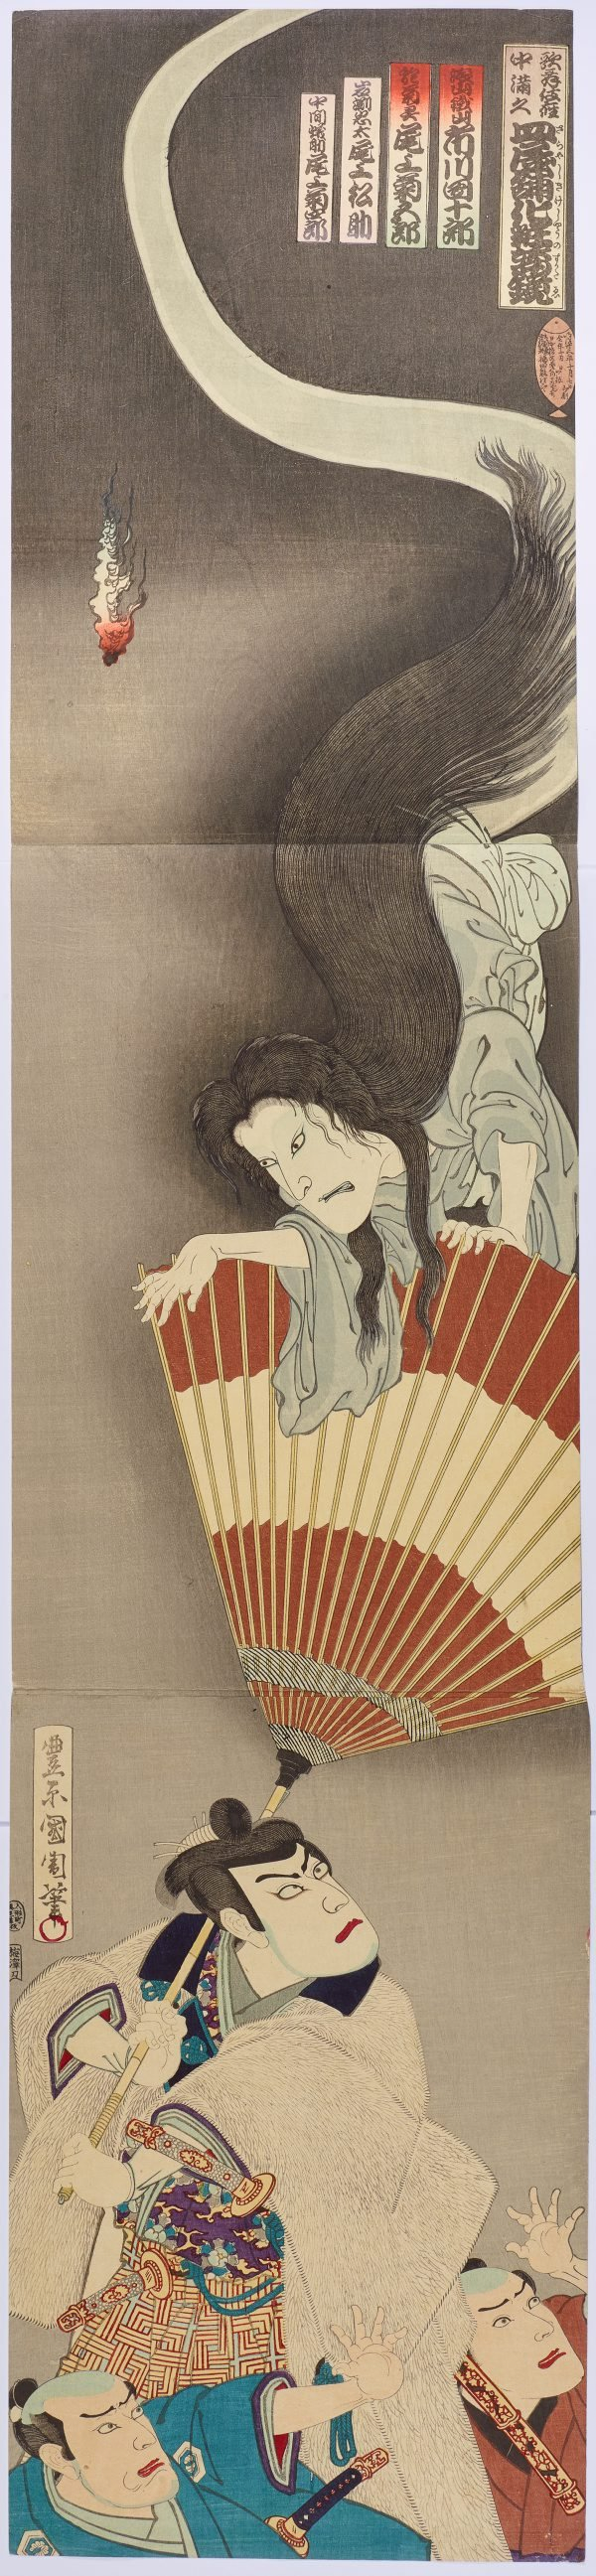 An image of The actors Onoe Kikugorō V as the ghost of Okiku (above), Ichikawa Danjūrō IX as Aoyama Onoe, with Onoe Kikujirō V and Onoe Matsusuke as retainers (below) from the play The mansion of plates at Banchō (Banchō sarayashiki)